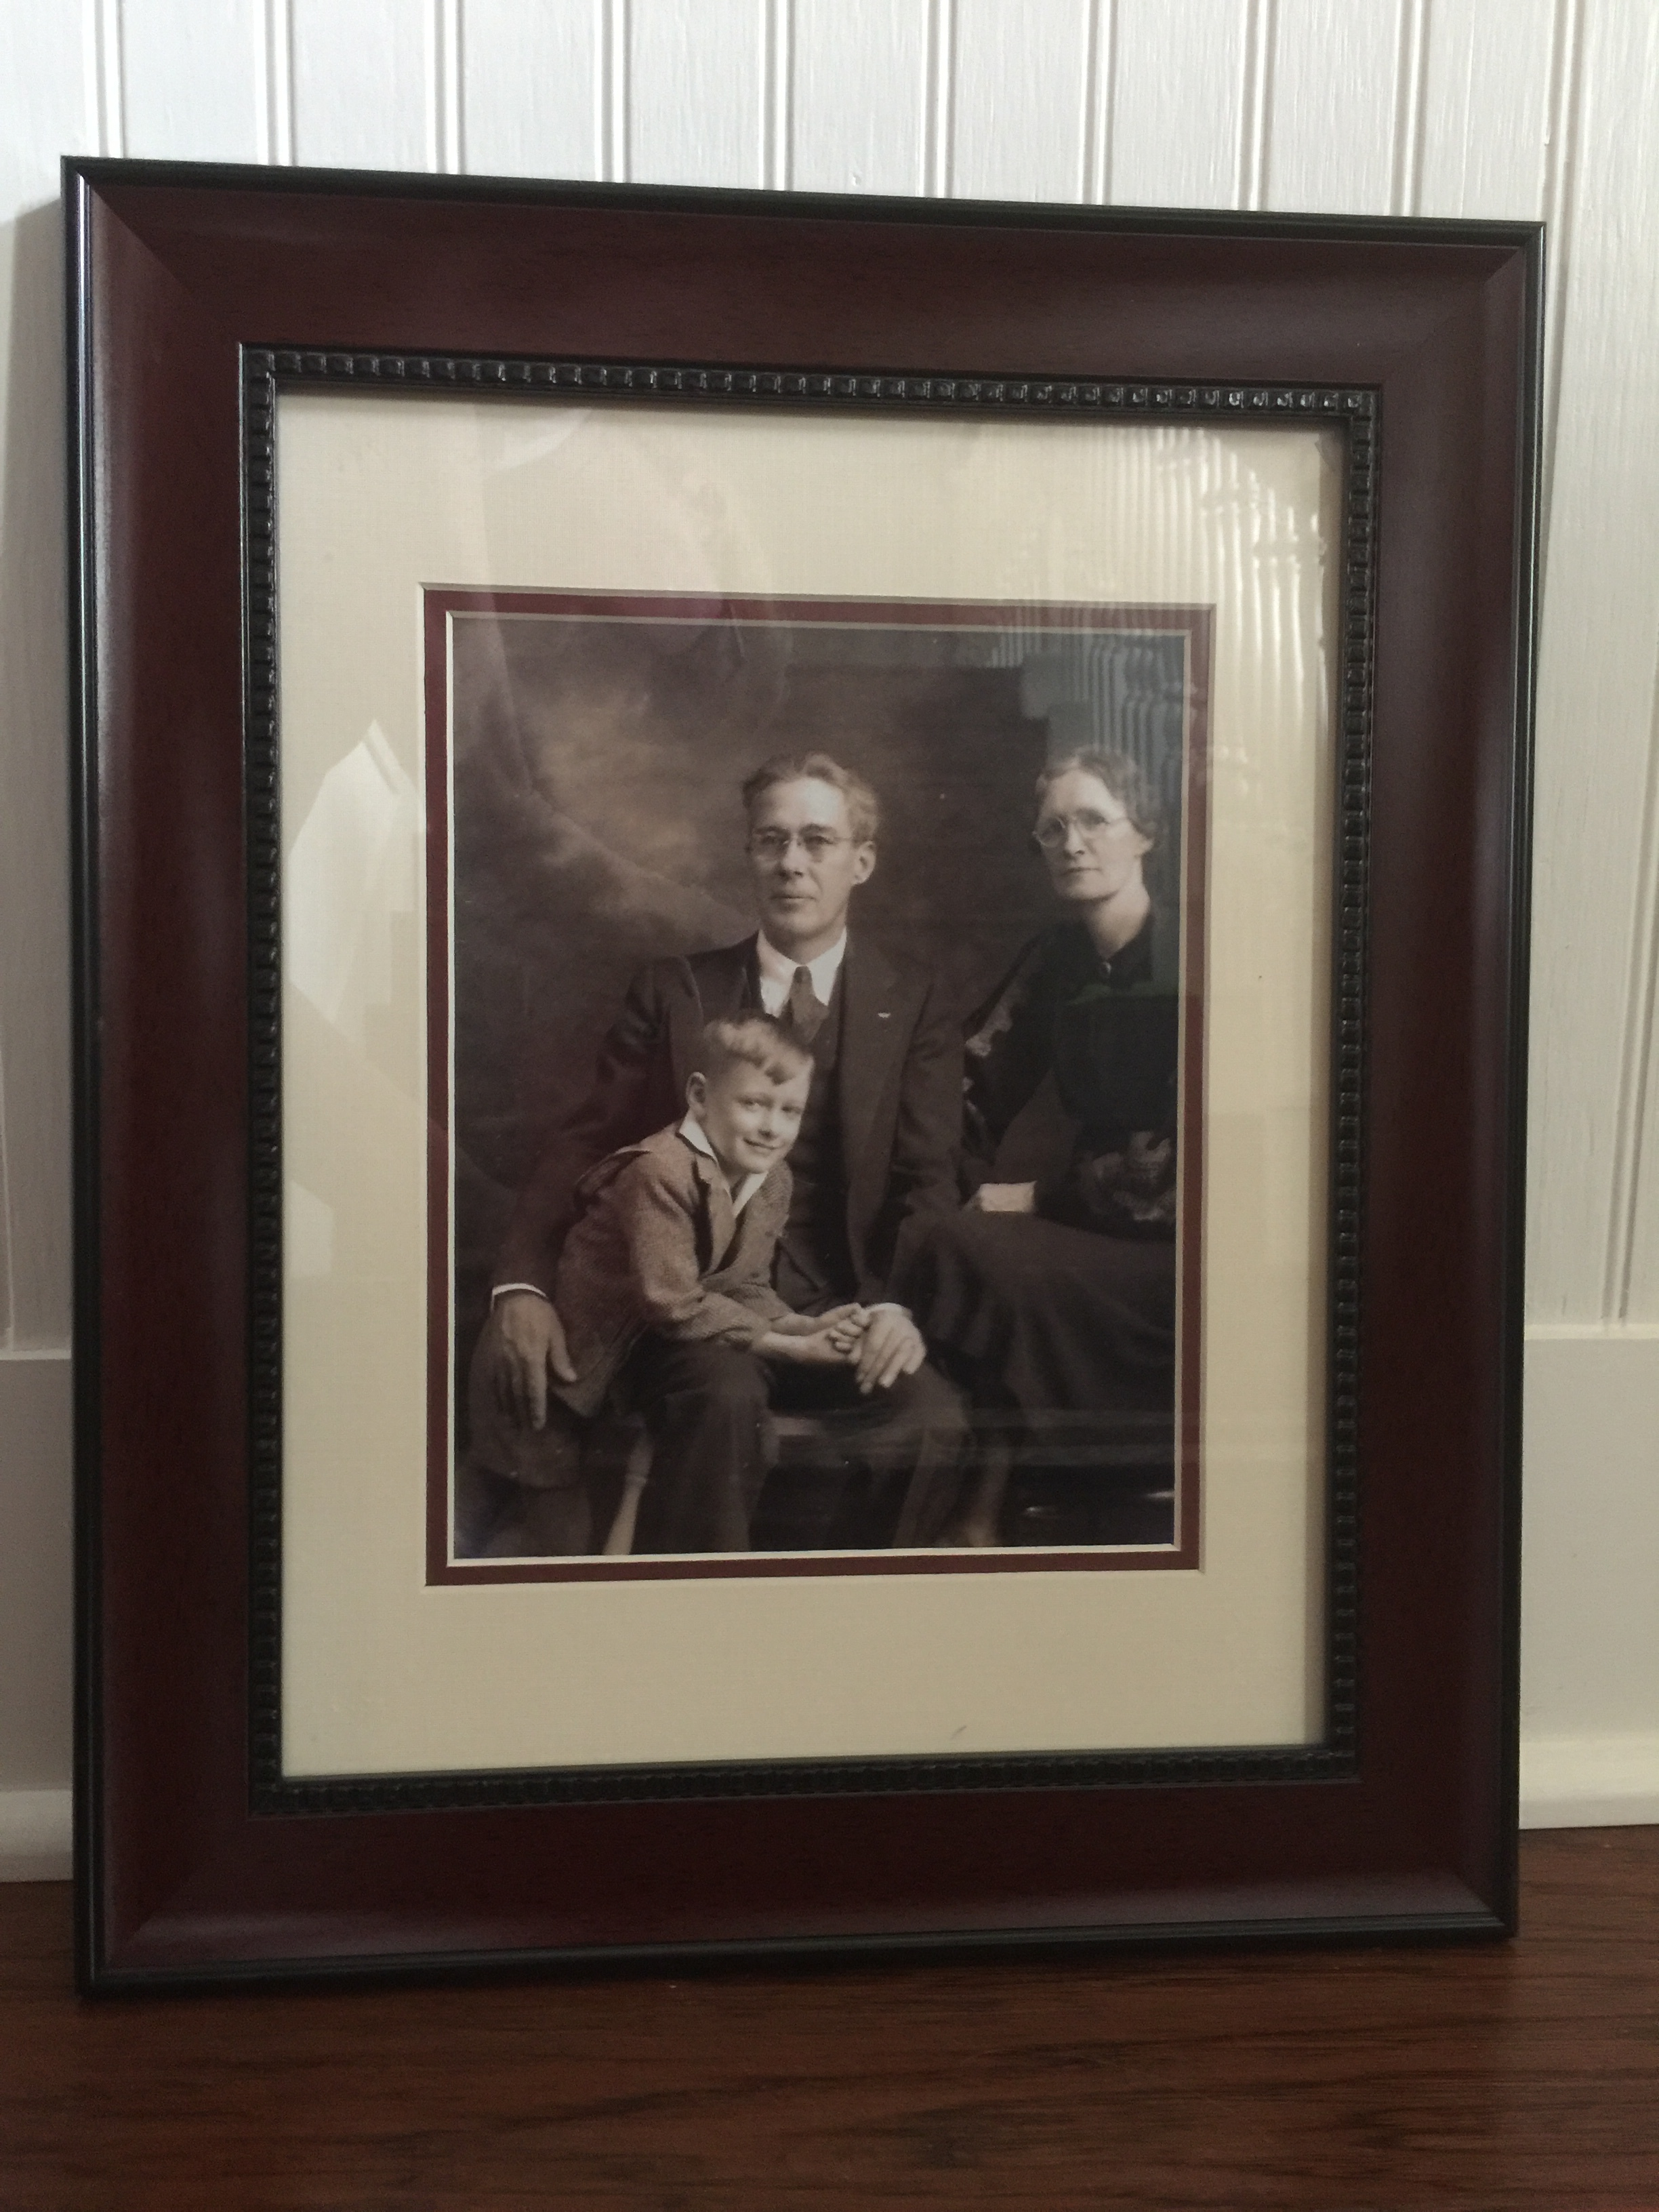 My father and his parents. I scanned the original photo and printed this heirloom photograph.